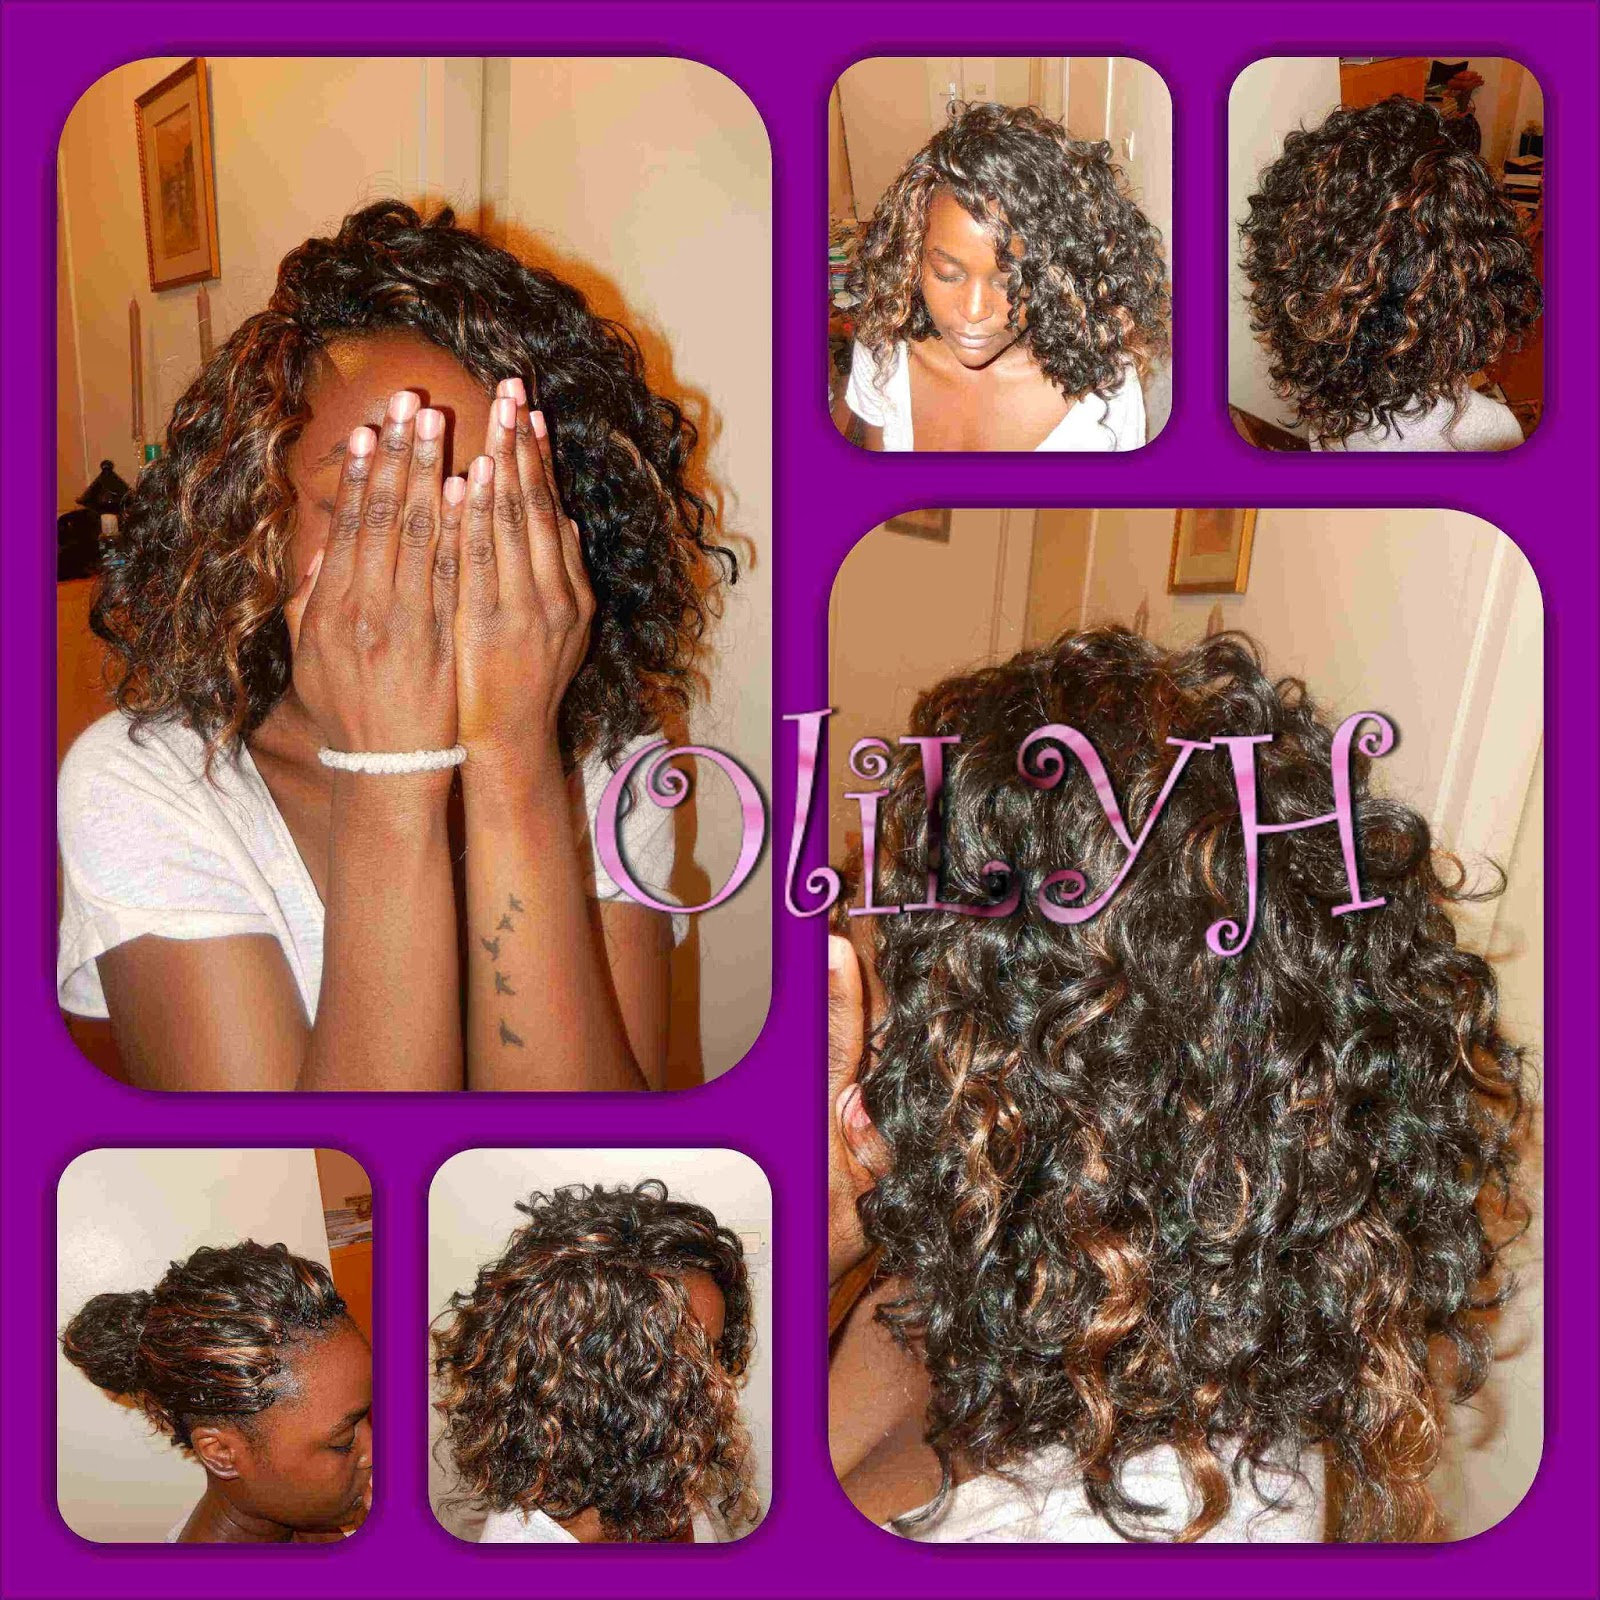 20140626_crochet+braids_cozy+deep+freetress_logo.jpg